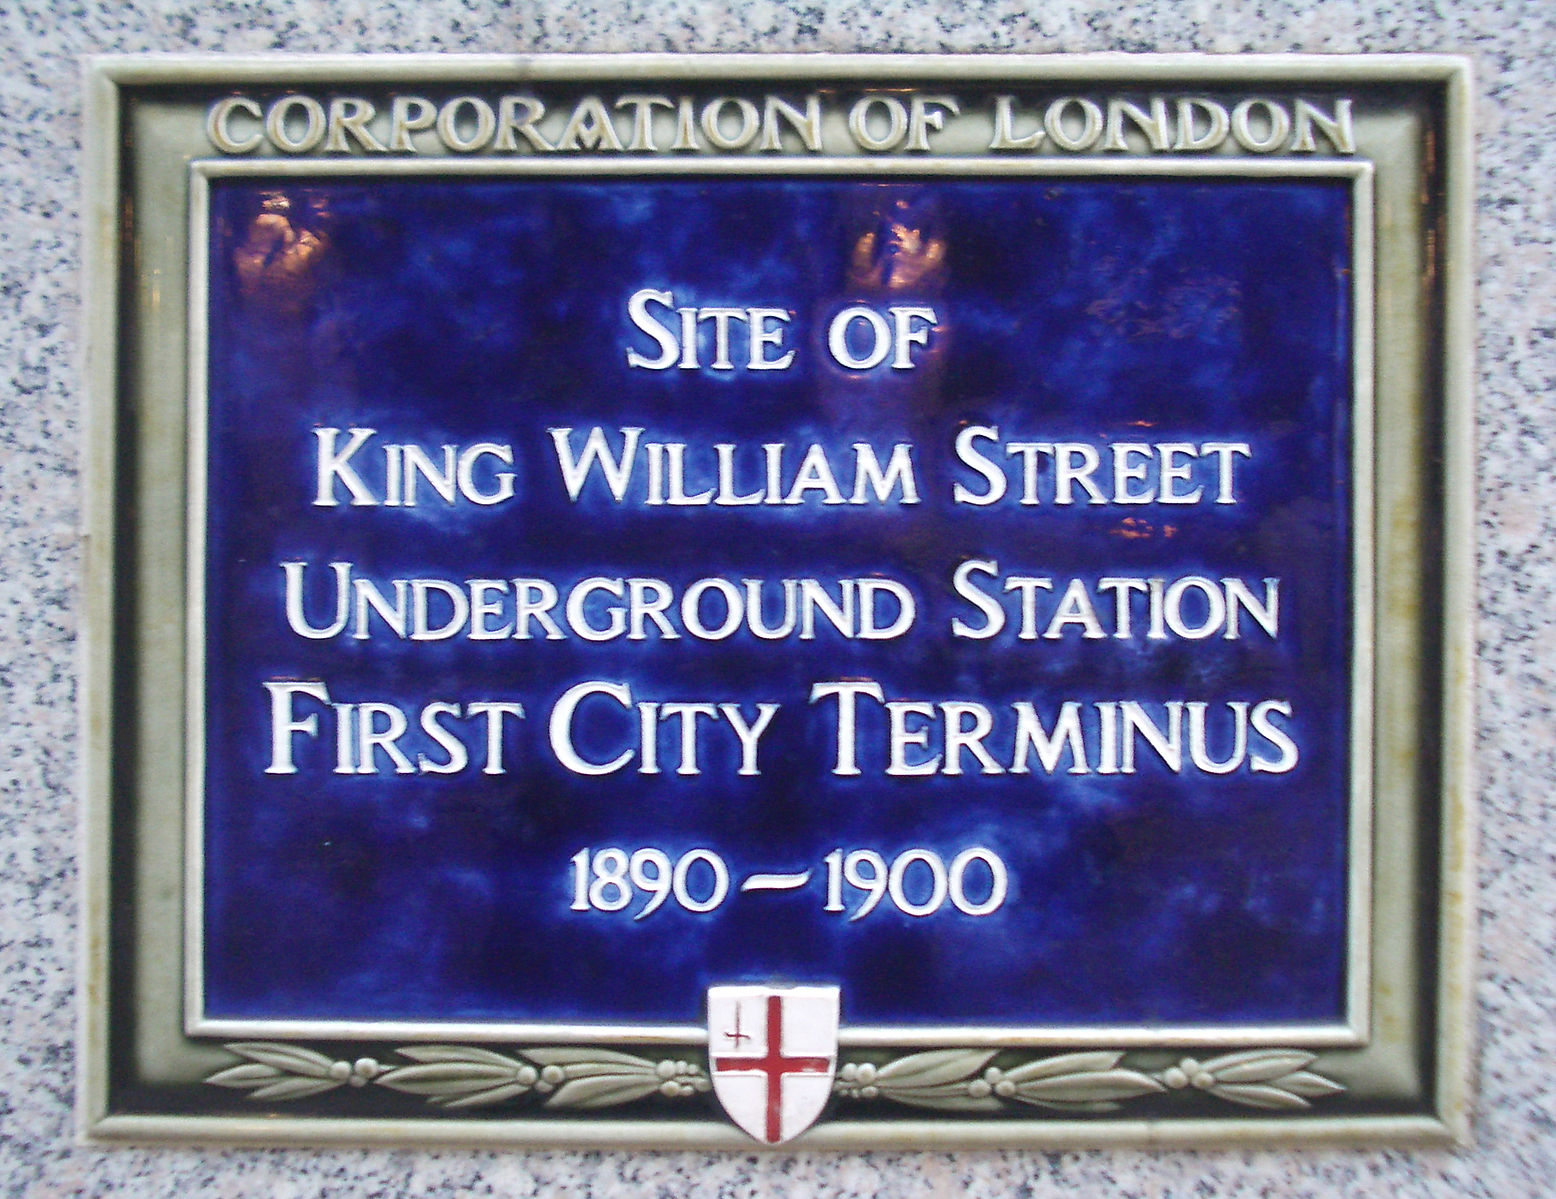 Plaque commemorating the site of King William Street station (image: Wikipedia)